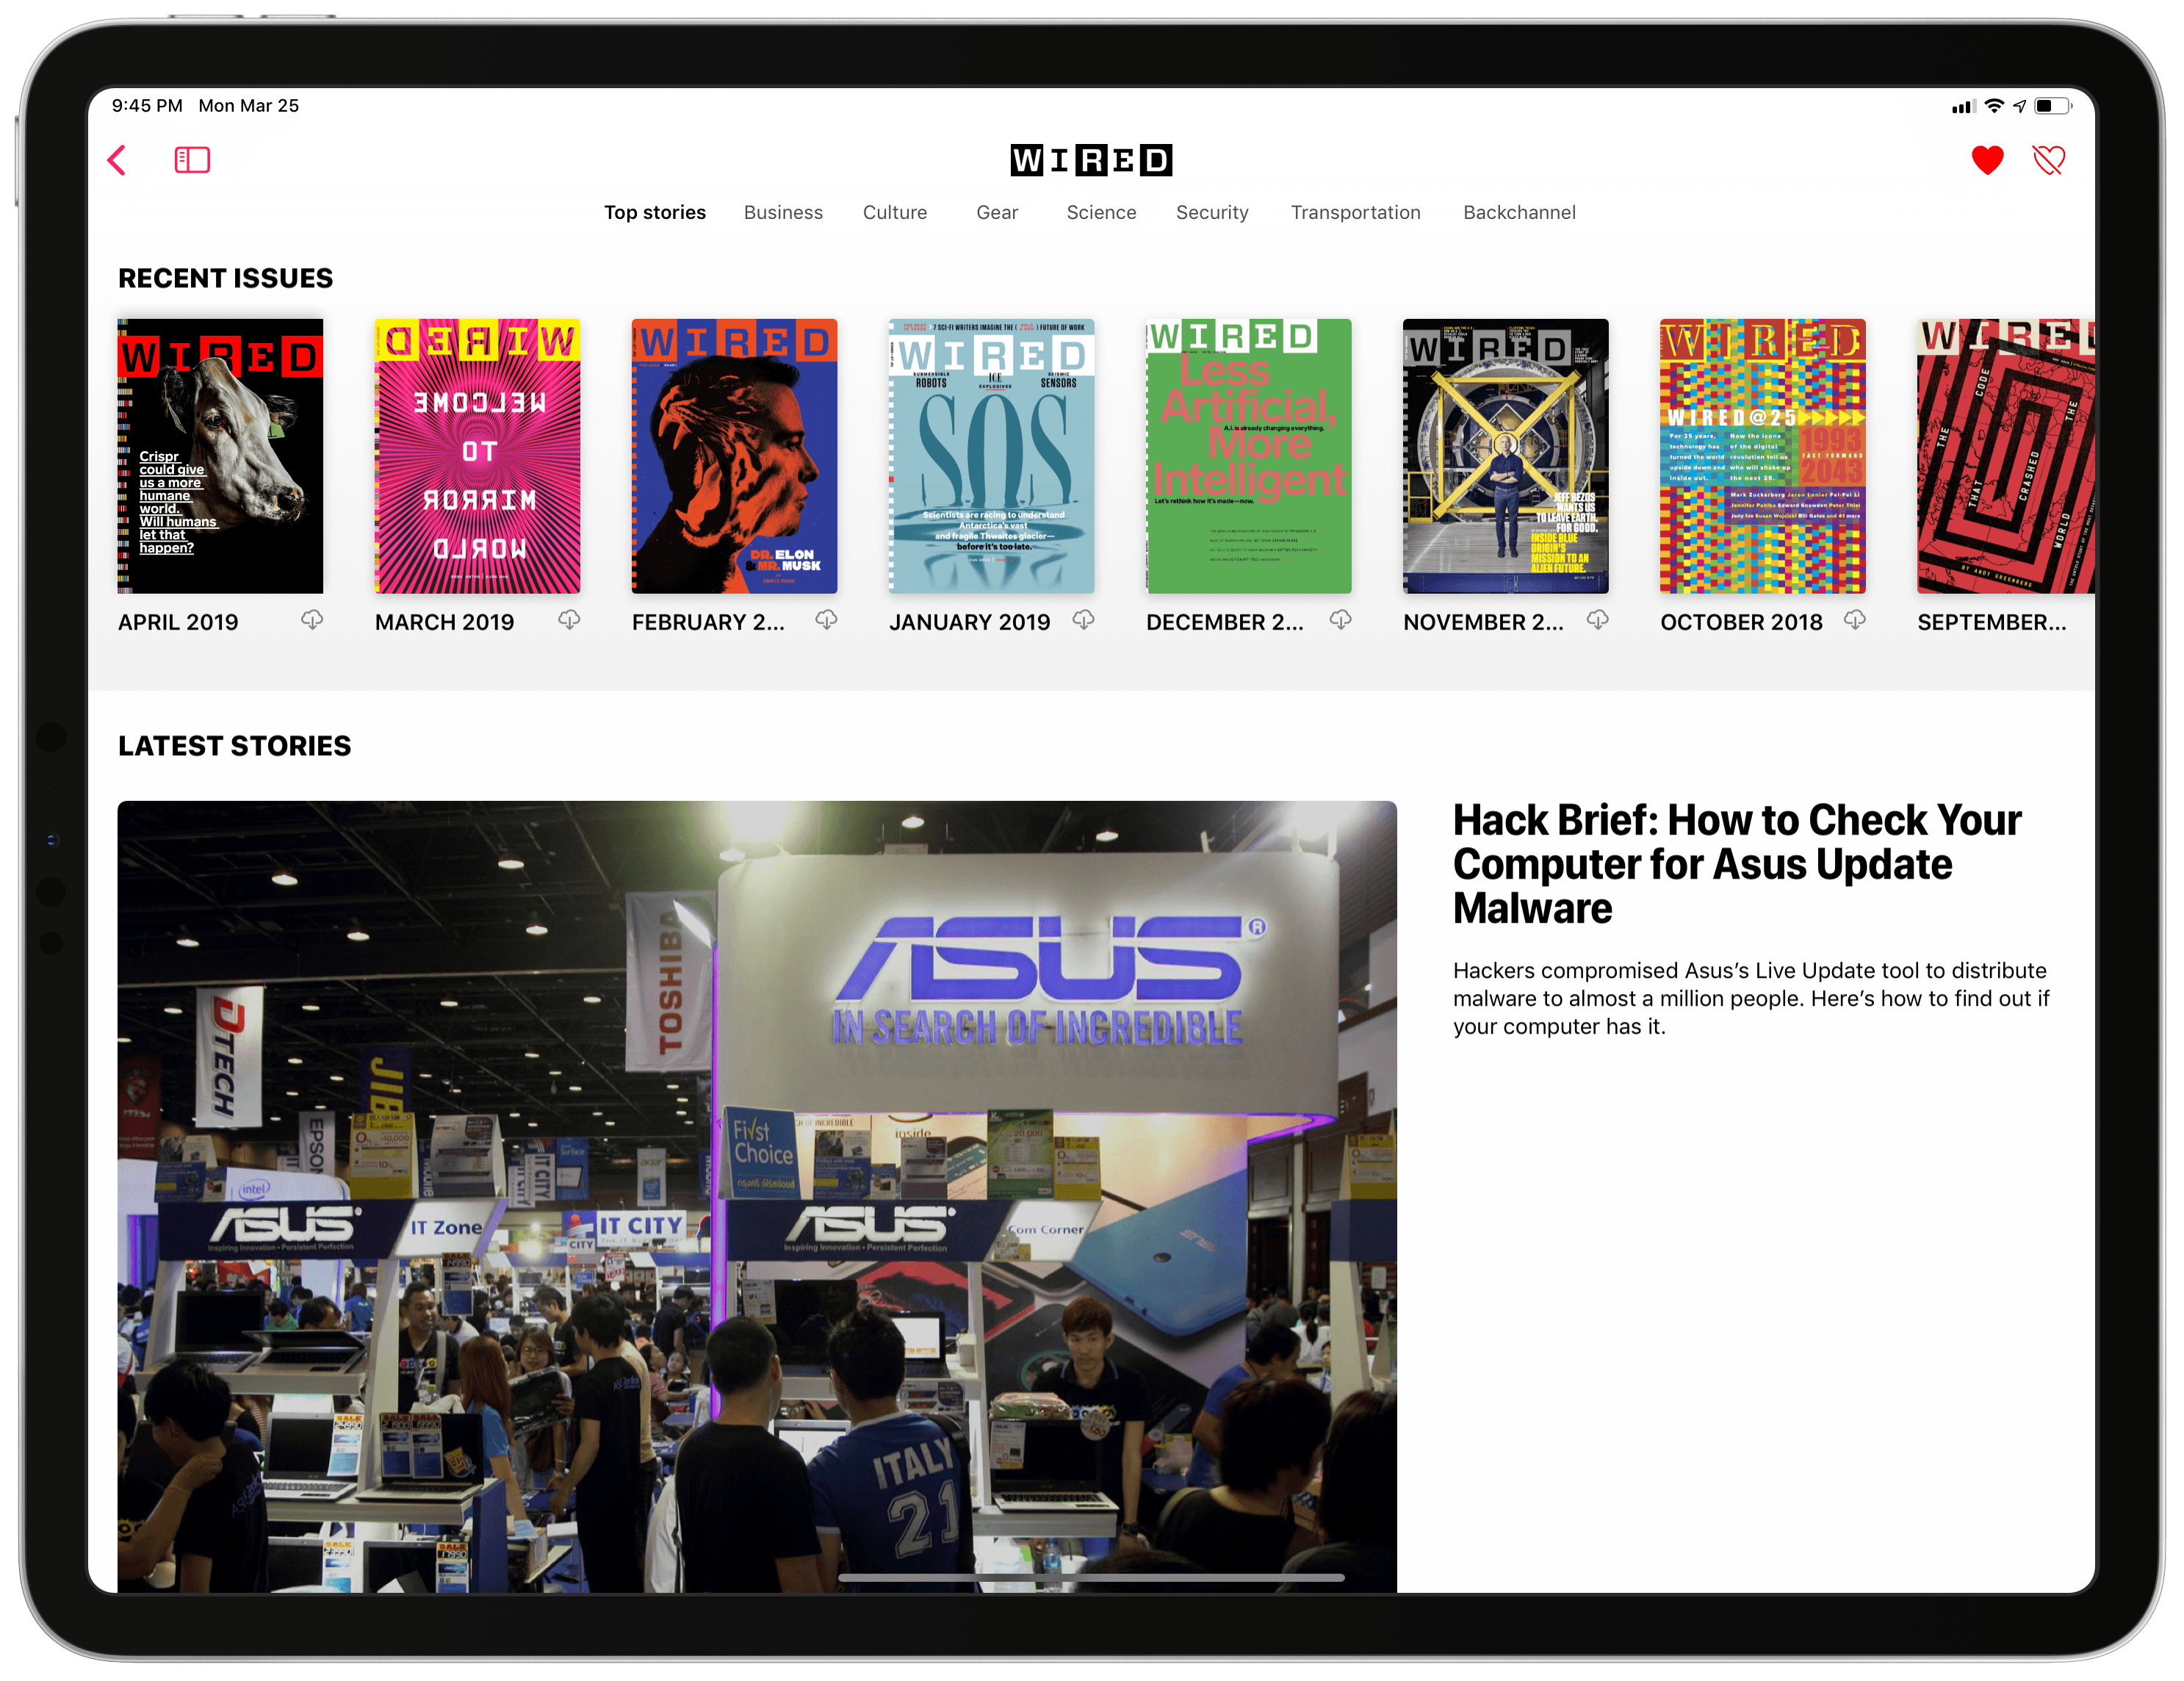 Opening an individual publication's page will show you past issues of the magazines that can be read in Apple News+. The same page can combine website stories with magazine issues.